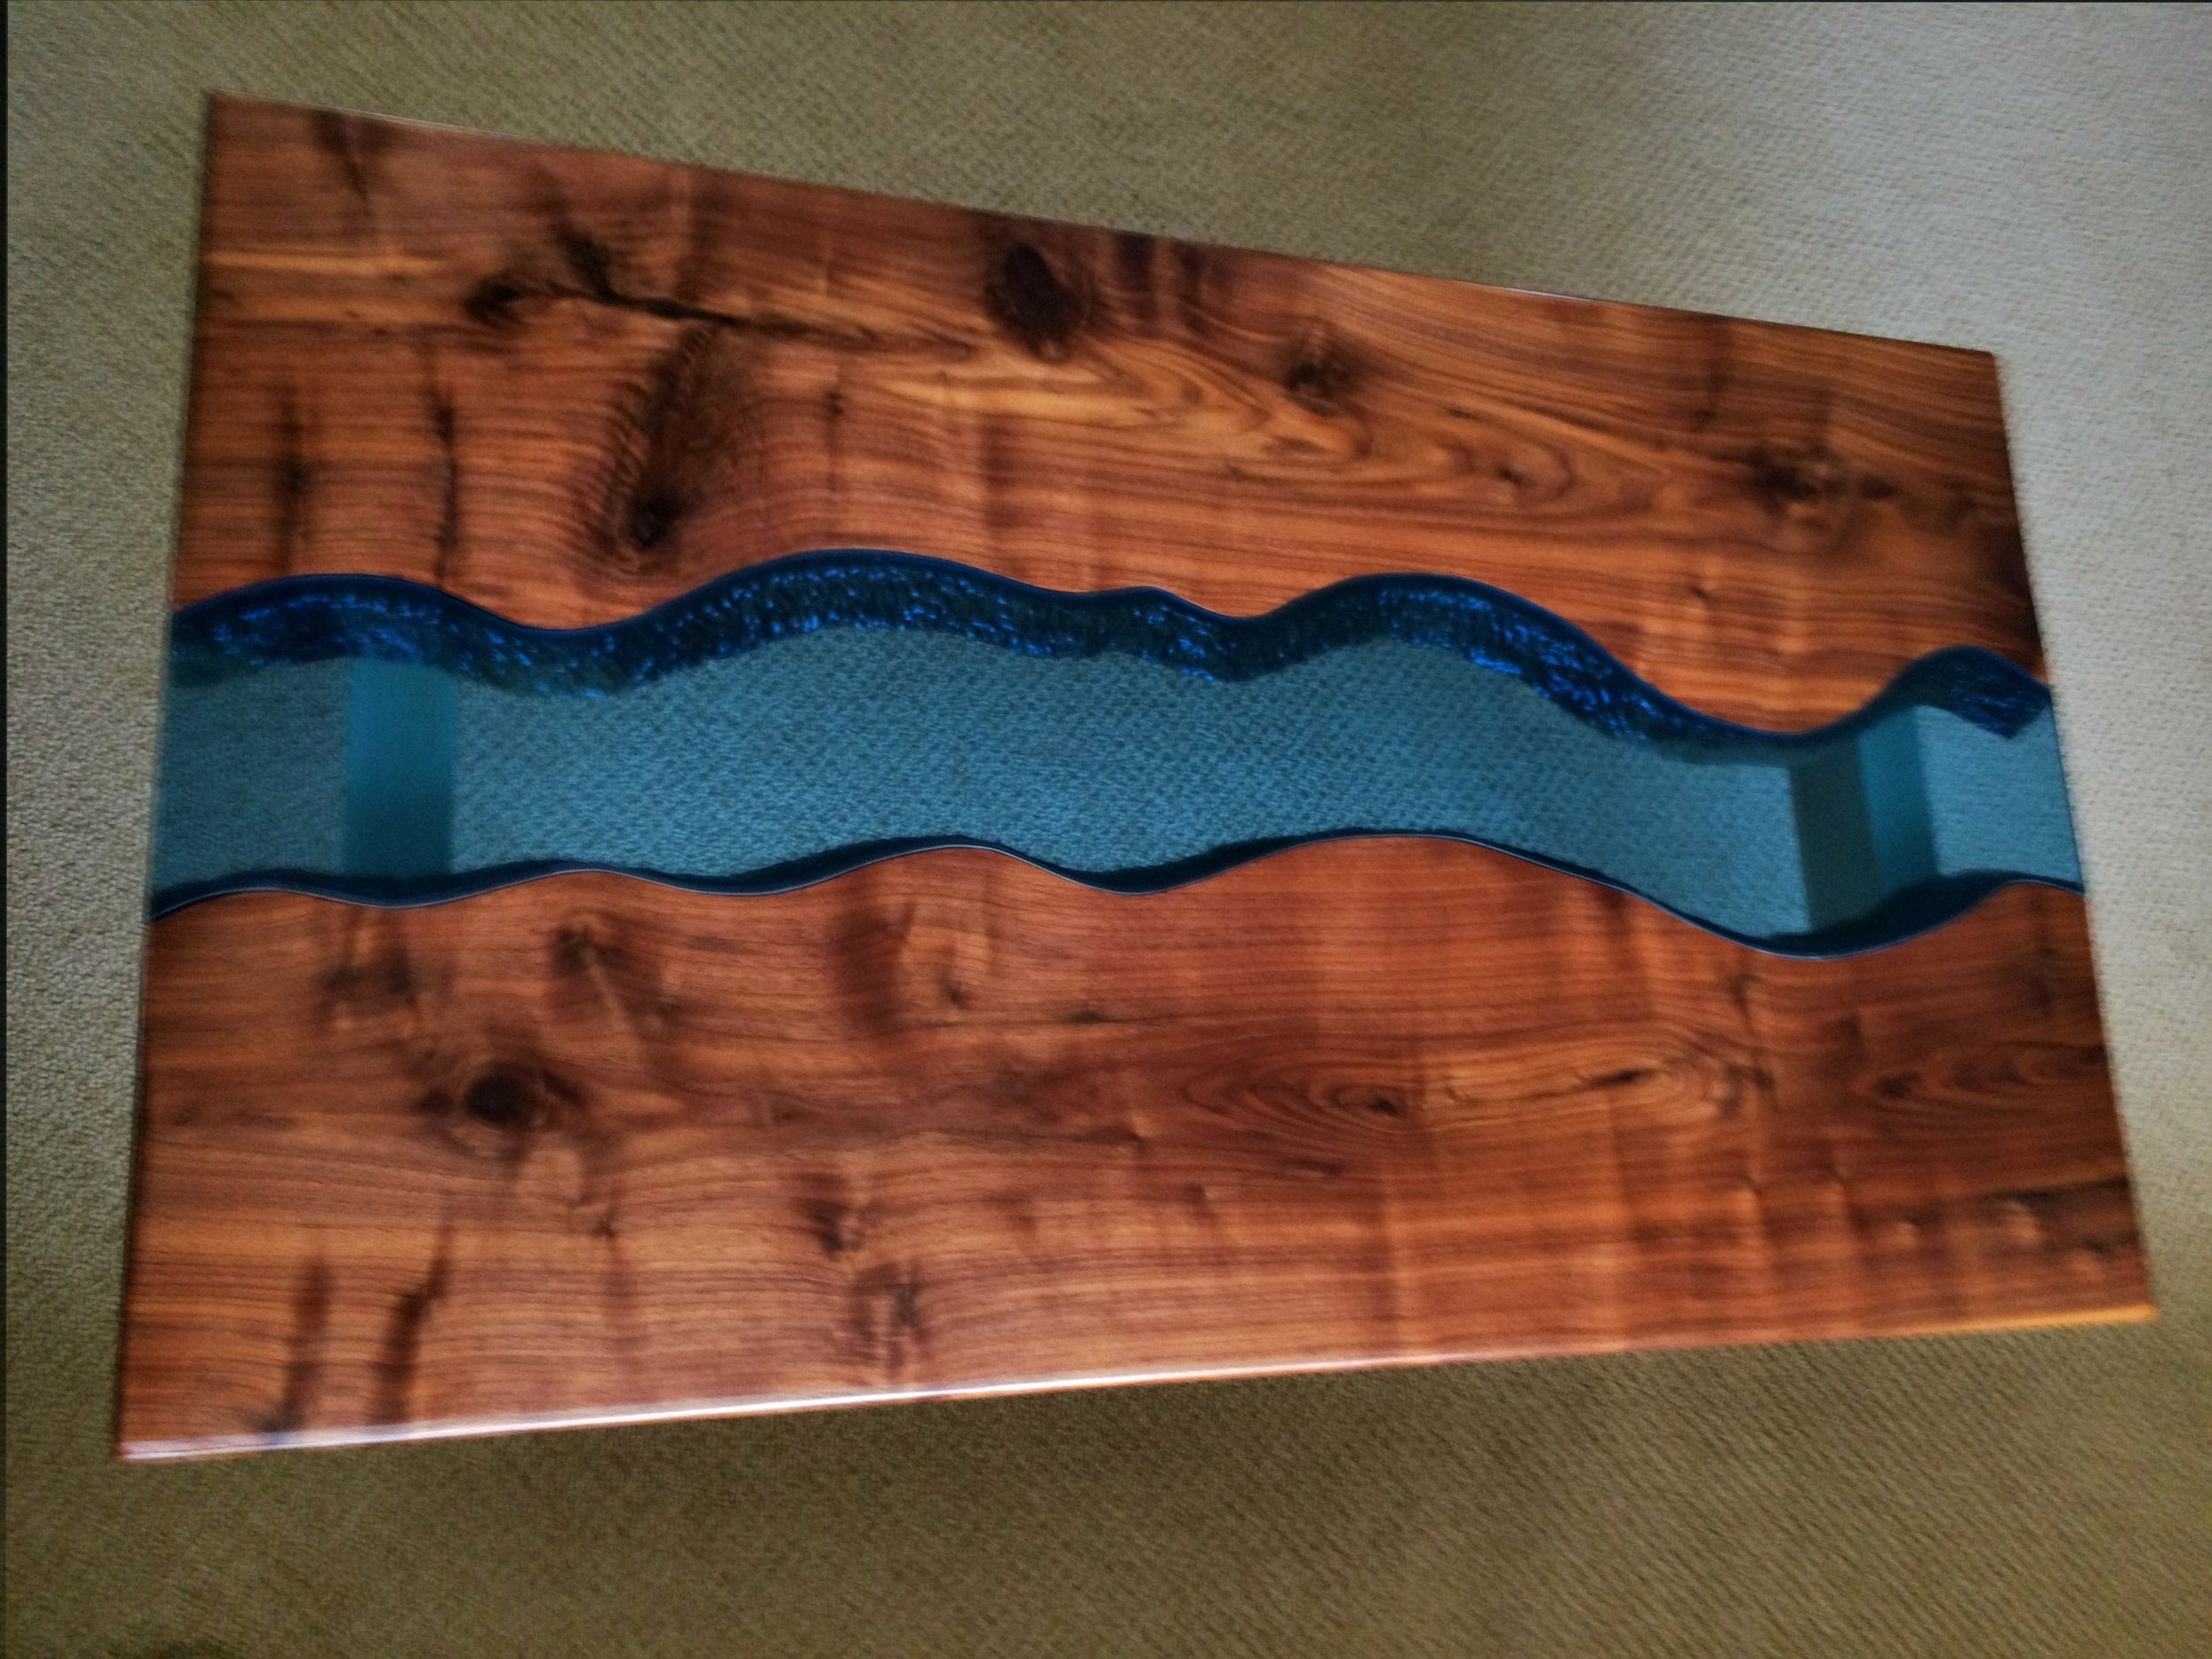 "River Coffee Table - Here is a coffee table I made out of black walnut for the top, maple for the legs, and blue glass for the water. I could not find a source for ""live-edge"" walnut, so I carved out the channel for the river by hand and machine tools."